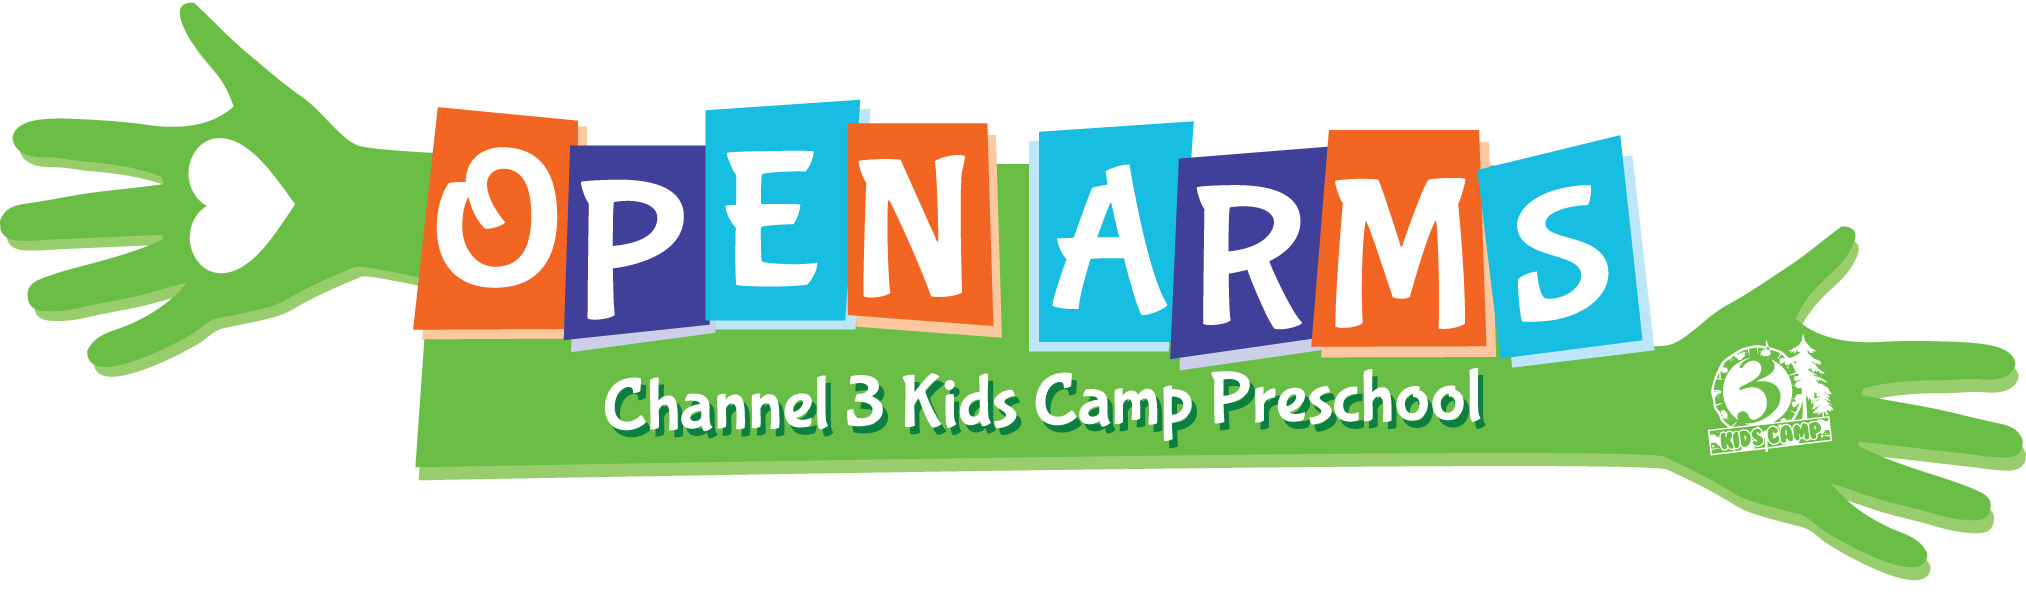 OPEN ARMS PRESCHOOL CHANNEL 3 KIDS CAMP